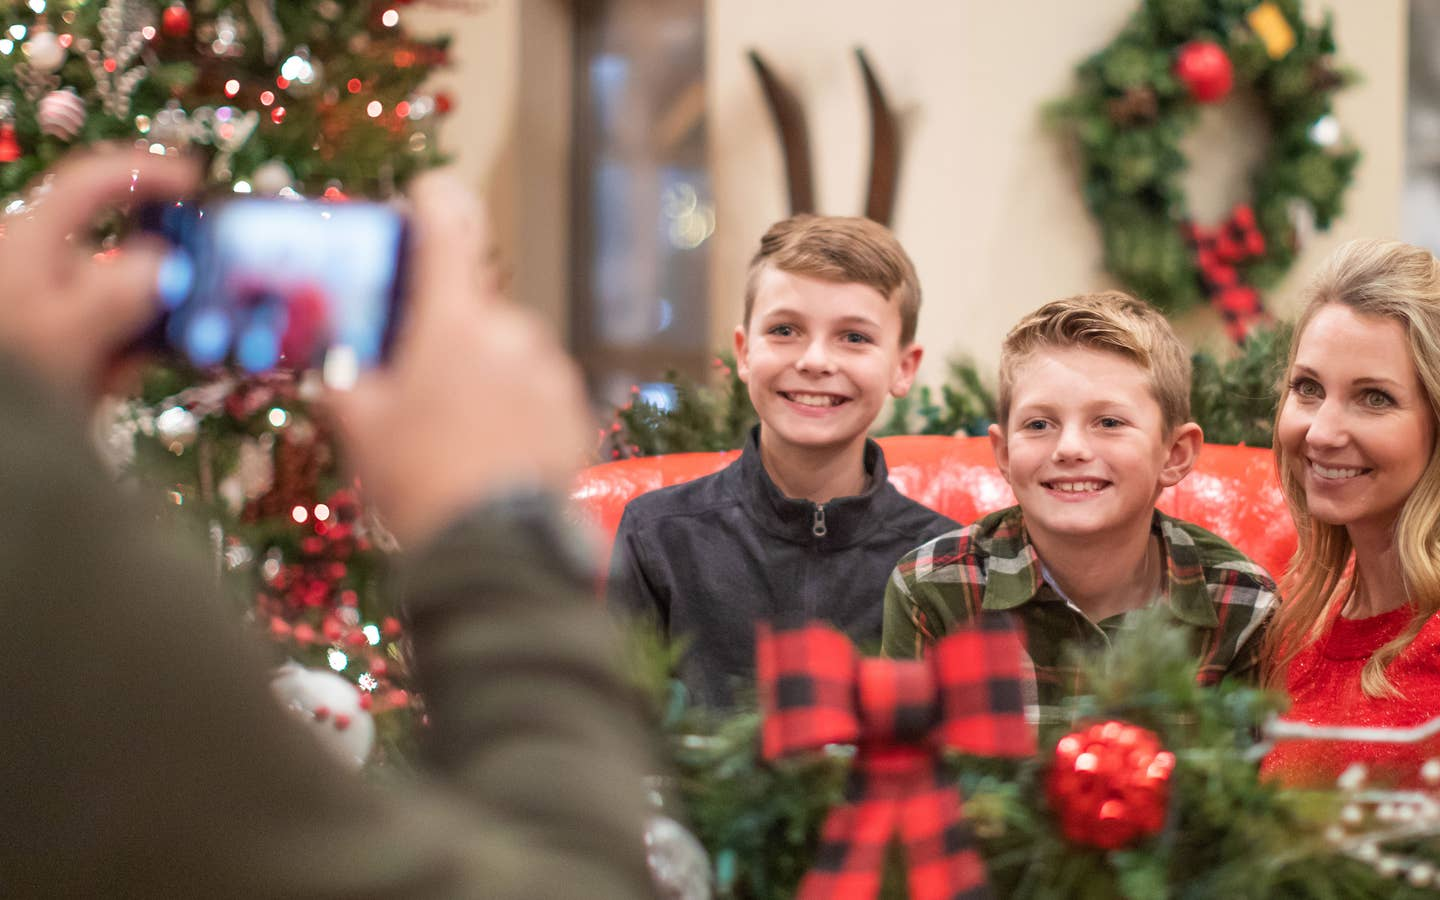 Author, Amanda Nall (left), pose on Santa's sleigh with her sons for a photograph surrounded by holiday decor.